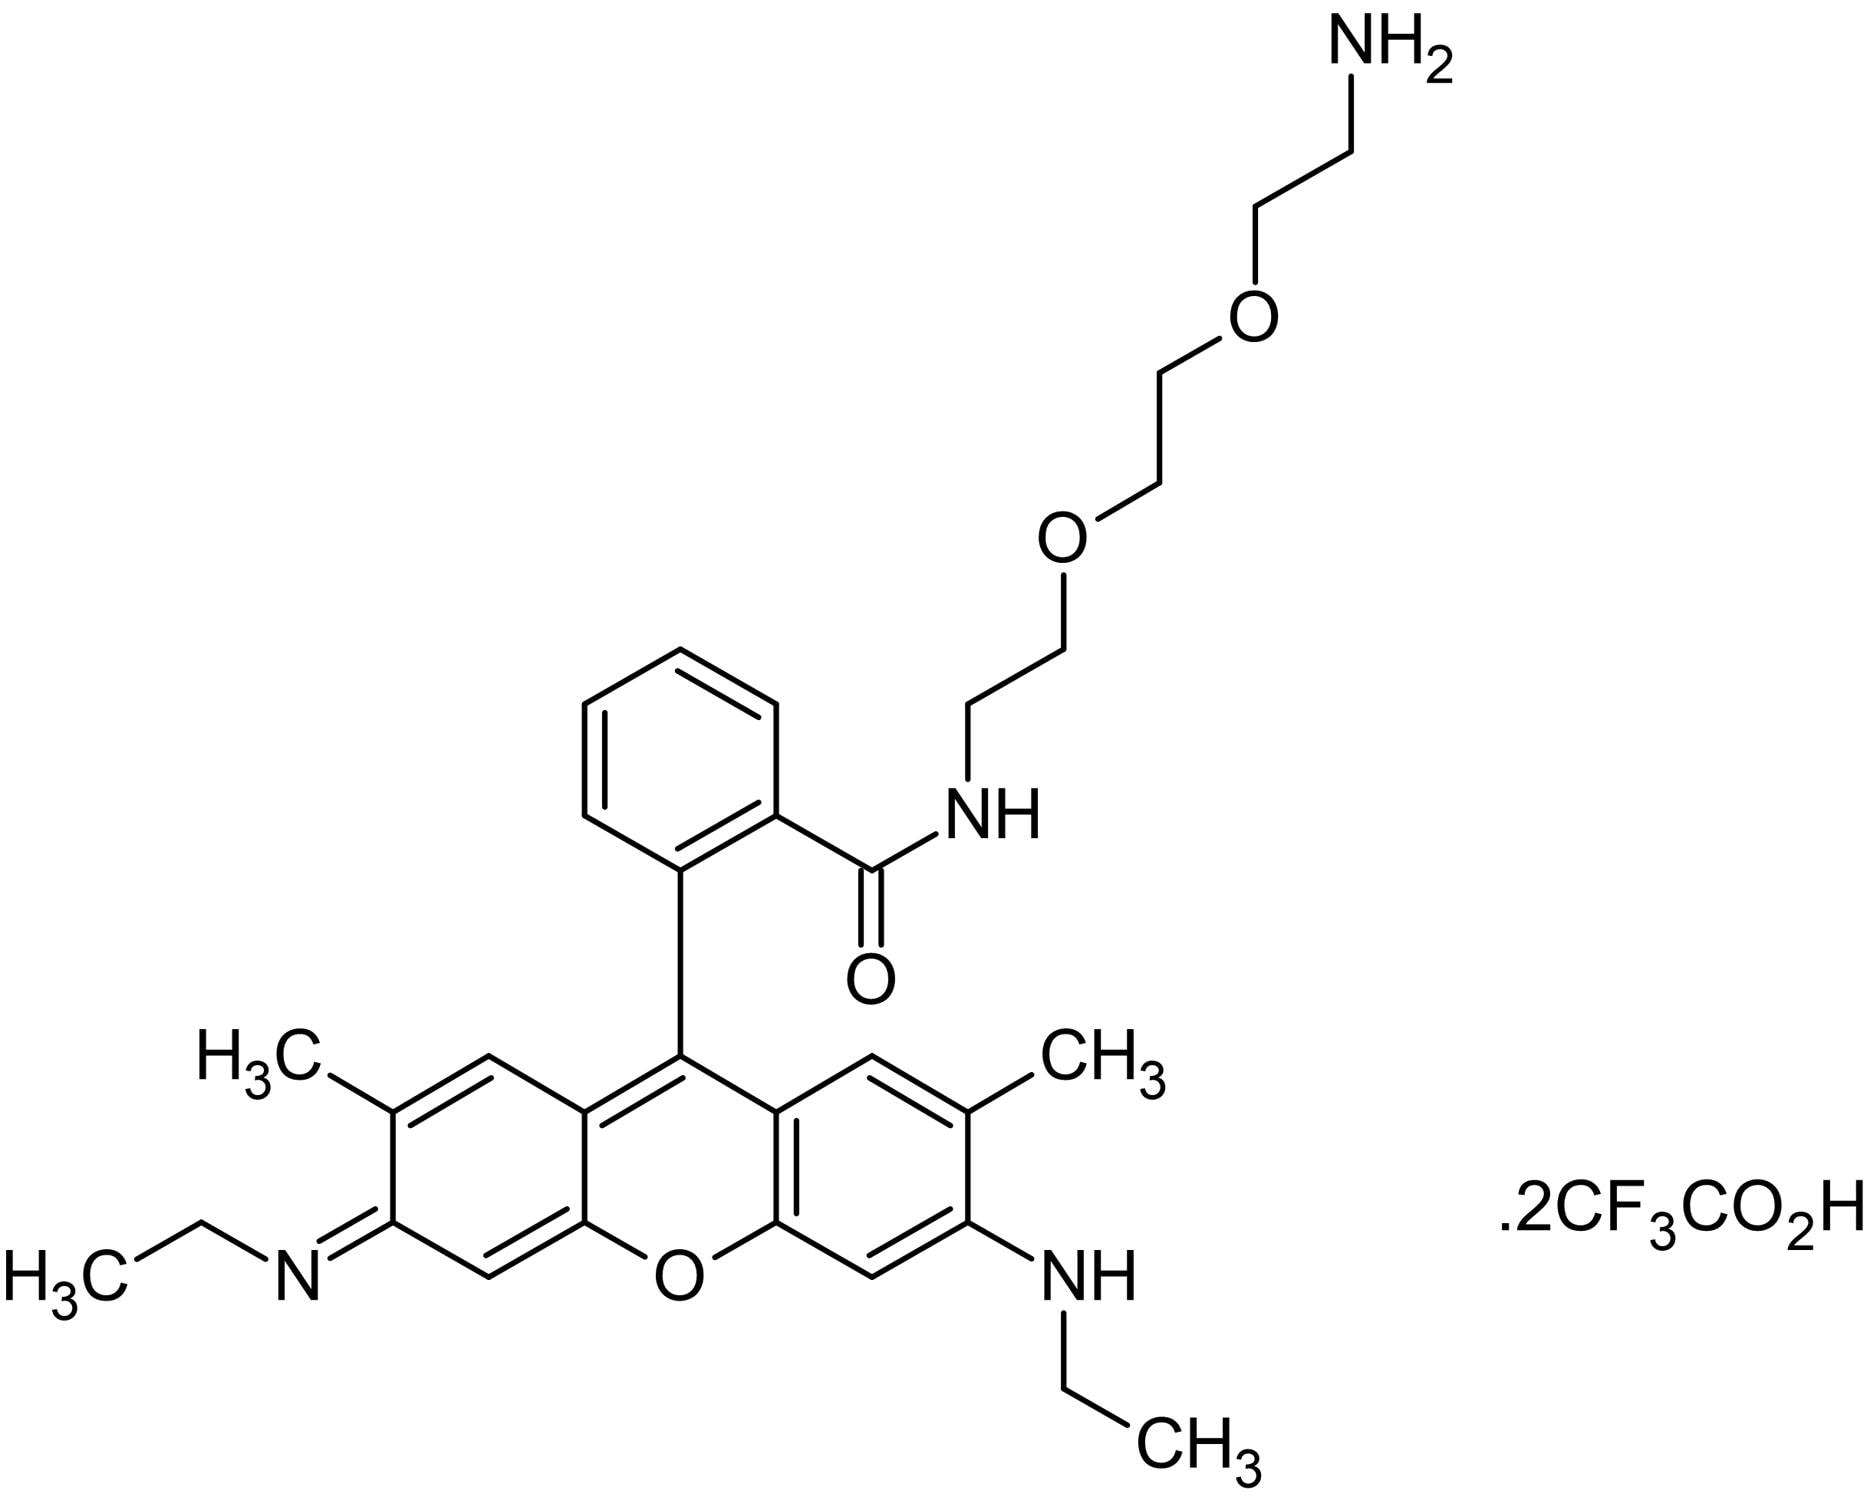 Chemical Structure - Rhodamine 6G bis(oxyethylamino)ethane amide bis(trifluoroacetate), Fluorescent labeling rhodamine (ab145501)